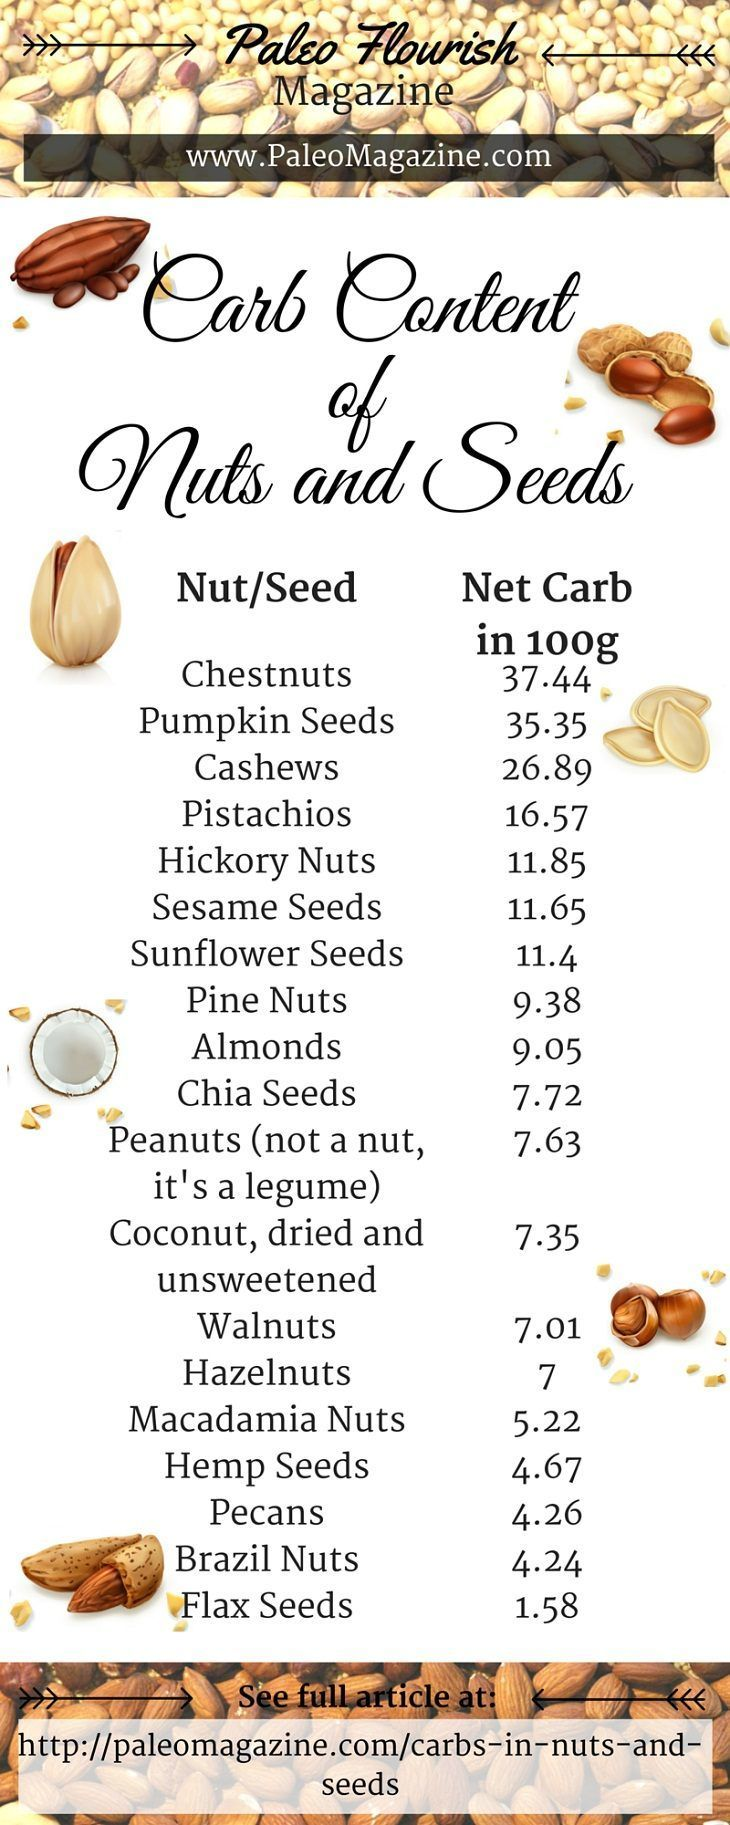 How Many Carbs In Nuts And Seeds? Louise Hendon | May 6  If you're on a low carb diet or a ketogenic diet, then you might want to know exactly how many carbs you're taking in daily.  And while nuts are generally pretty low in carbohydrates, there are some that are shockingly high in carbs like pumpkin seeds and chestnuts.  There are also other health concerns with nuts and seeds (like the fact that they are high in polyunsaturated fats and anti-nutrients), so try not to overeat them on keto…